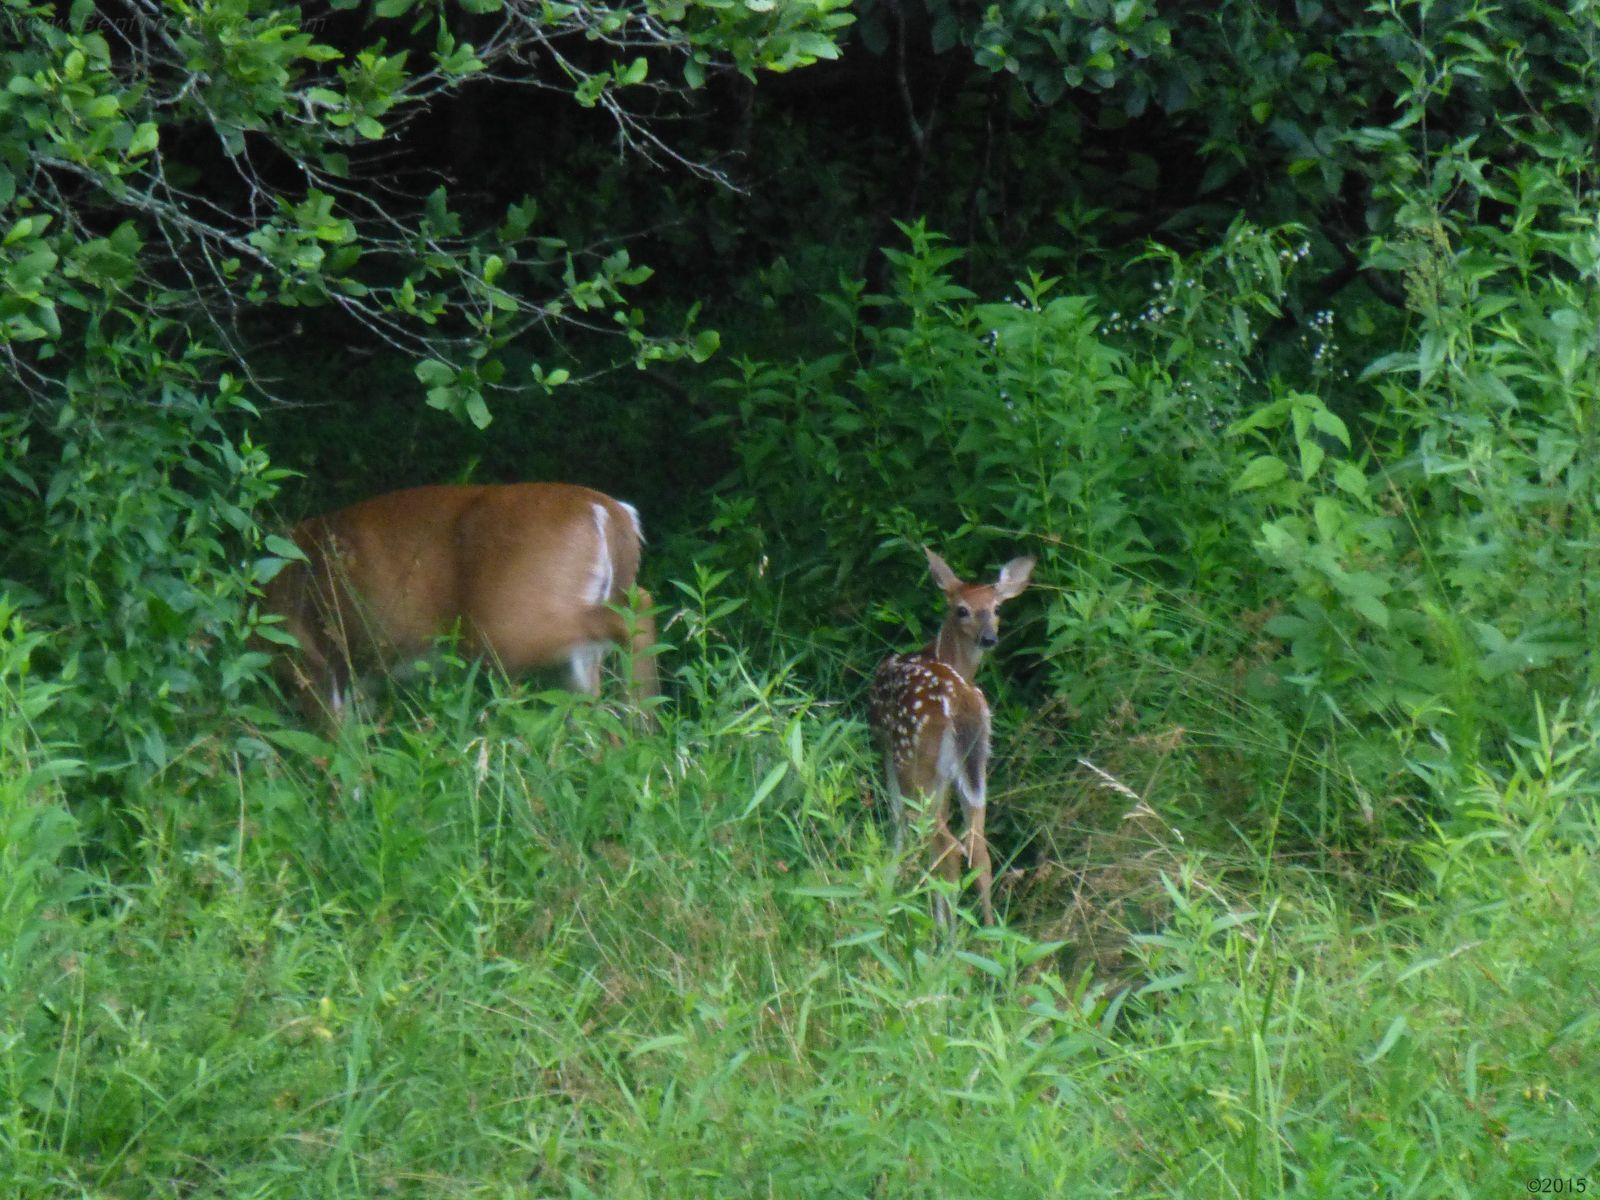 July 4, 2015 - fawn appears